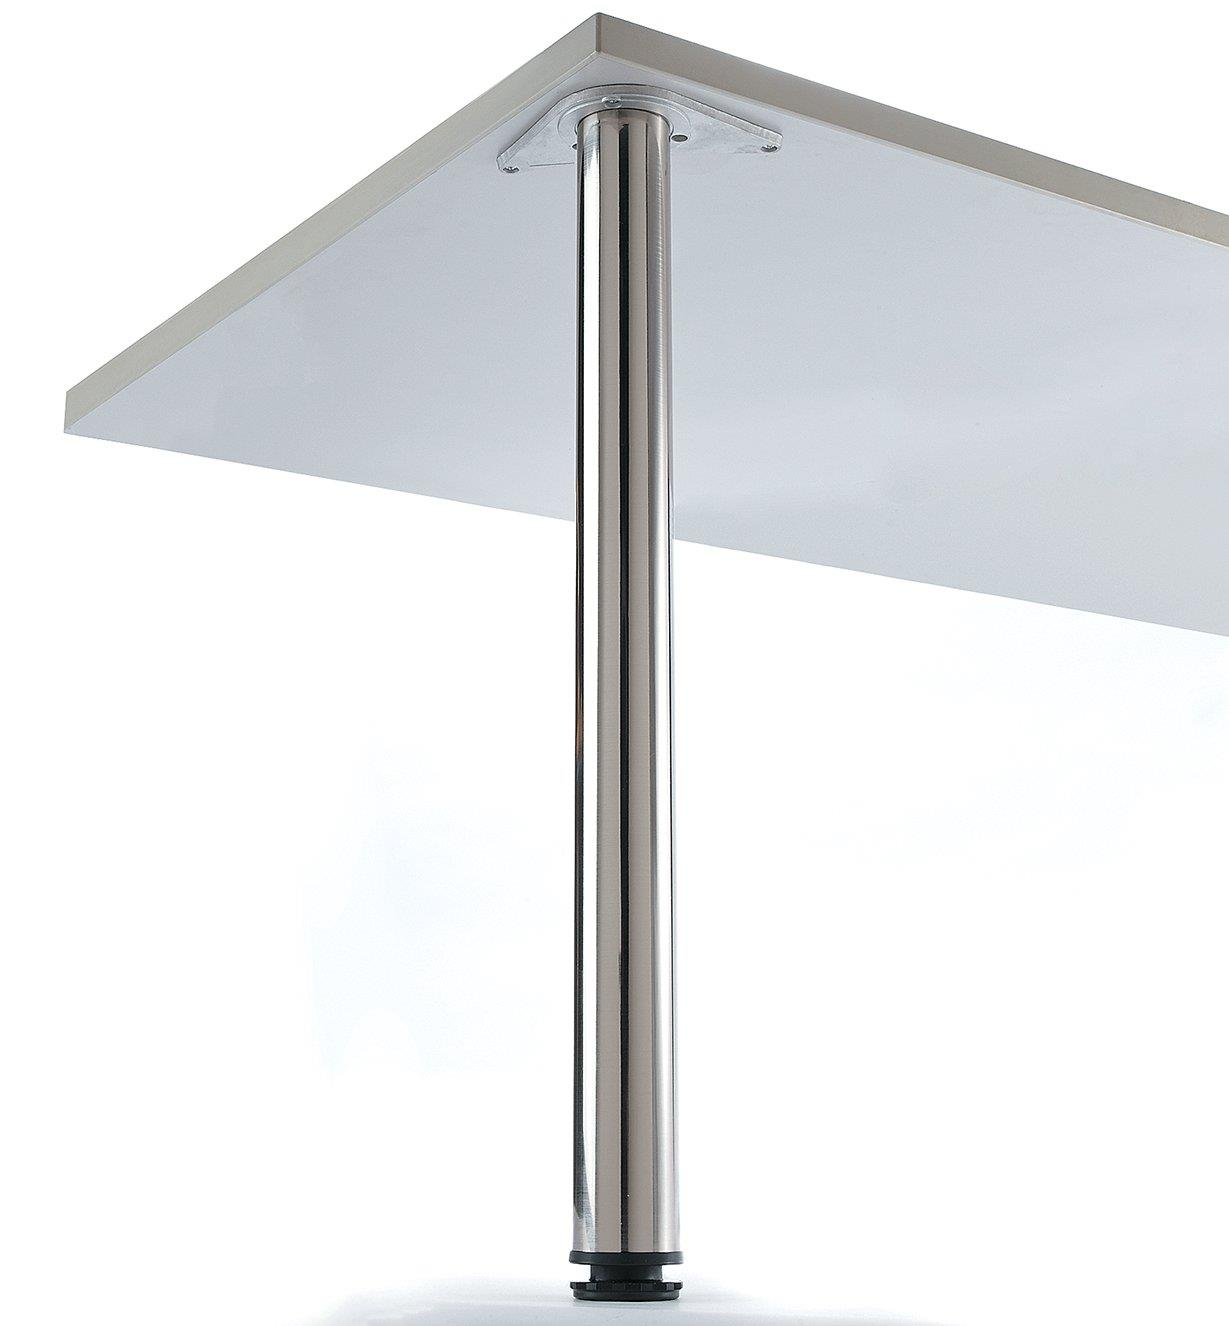 00S8012 - Satin Nickel Table Leg